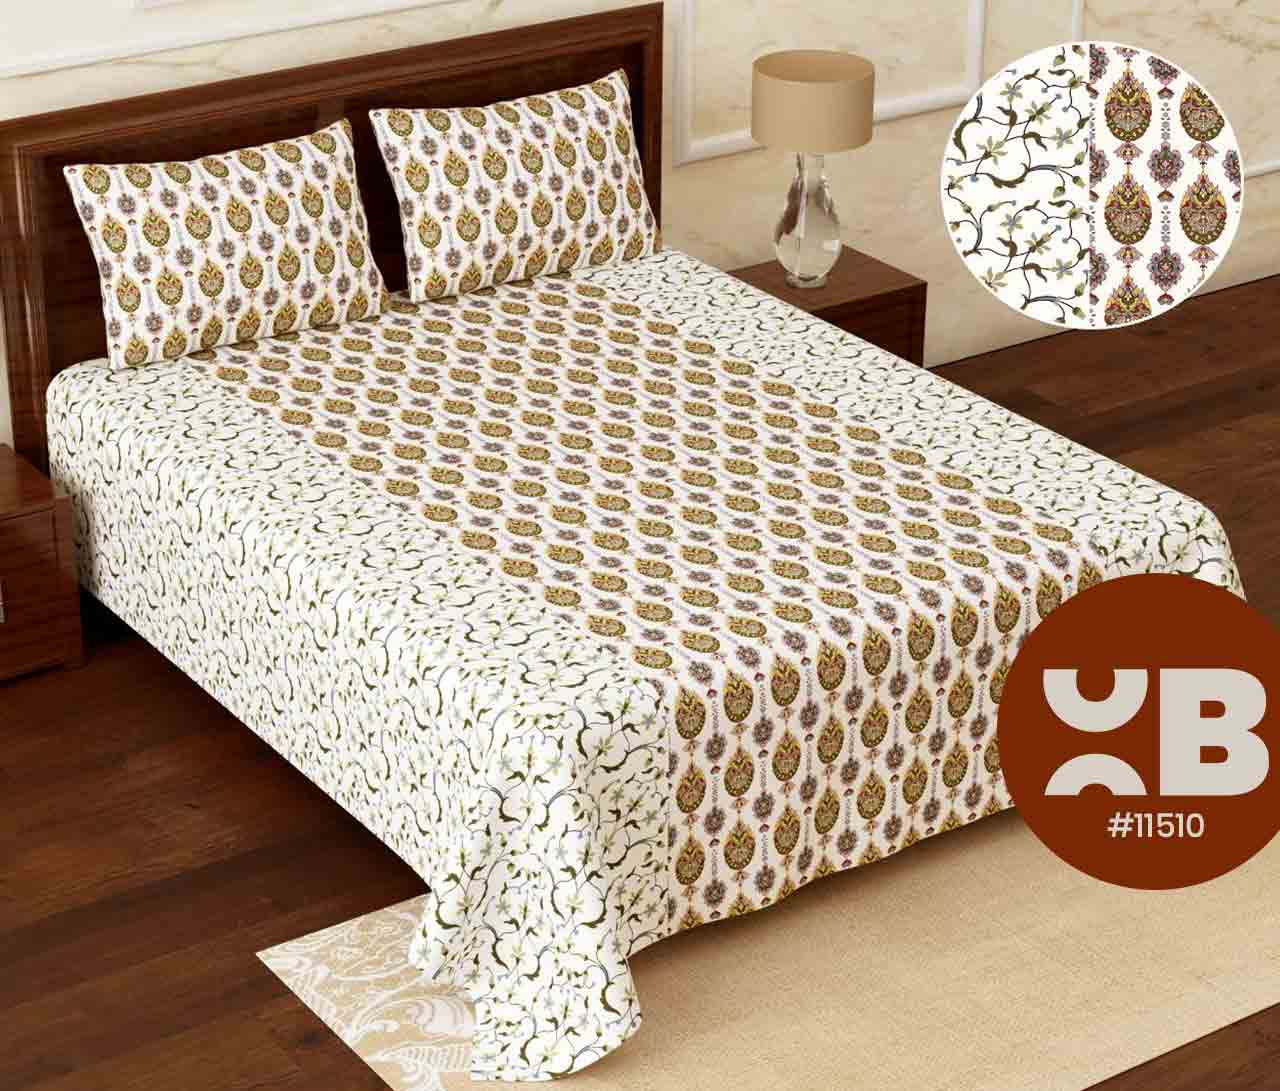 Sober design Super King Size Double Bedsheet with two Pillow Covers ( 110X115)